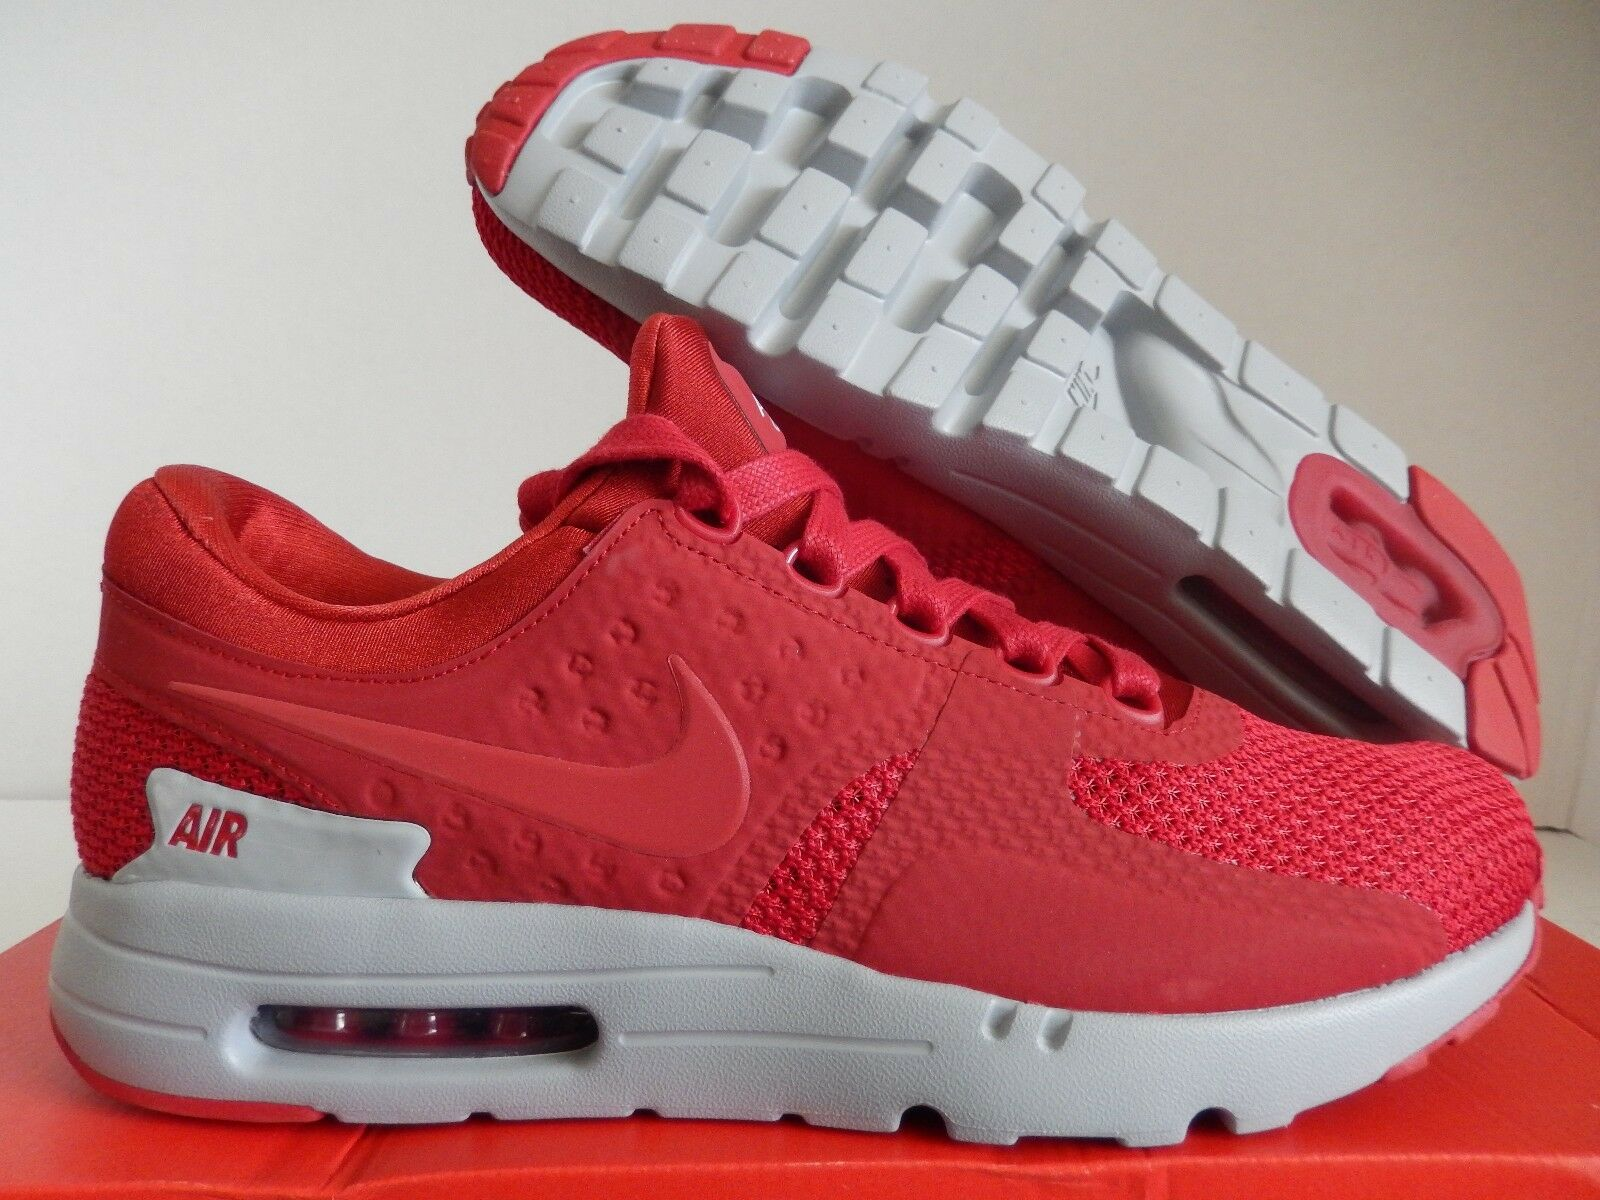 Nike air red-gym max 0 premio palestra red-gym air red-wolf grey sz 9,5 - 881982-600] 0bf966